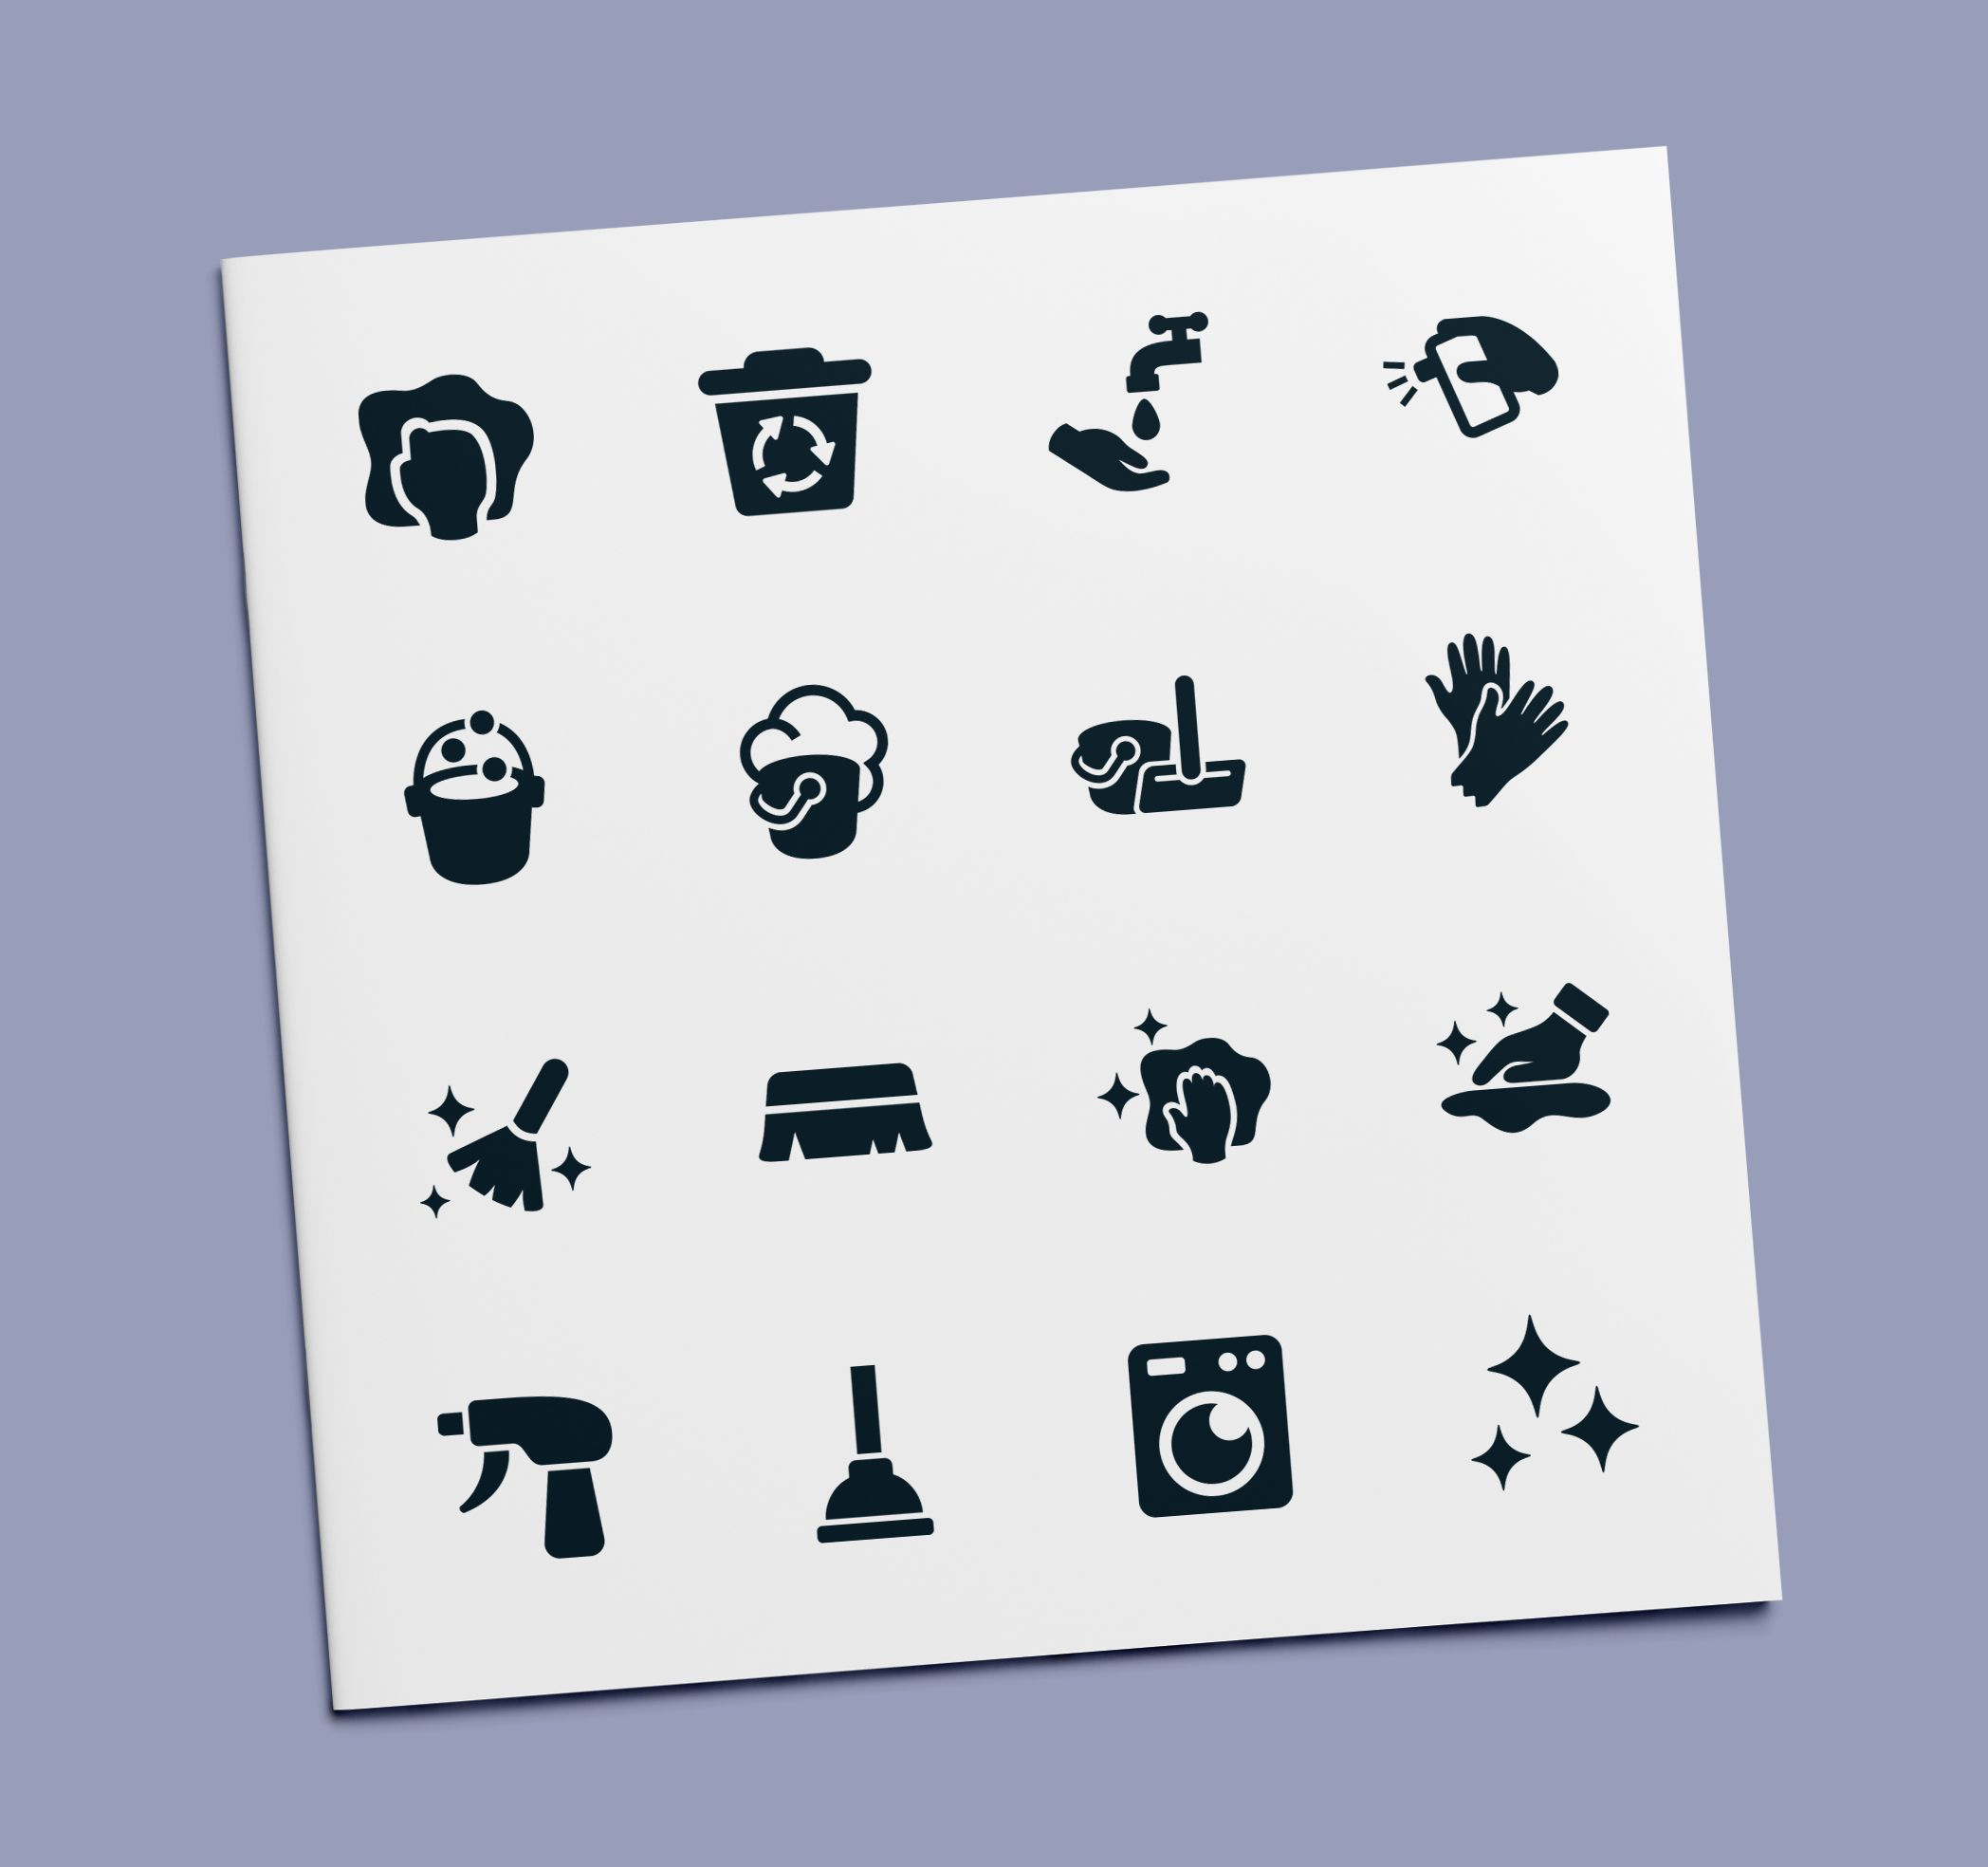 'Washing & Cleaning Glyph' by Minh Do Cleaning icons